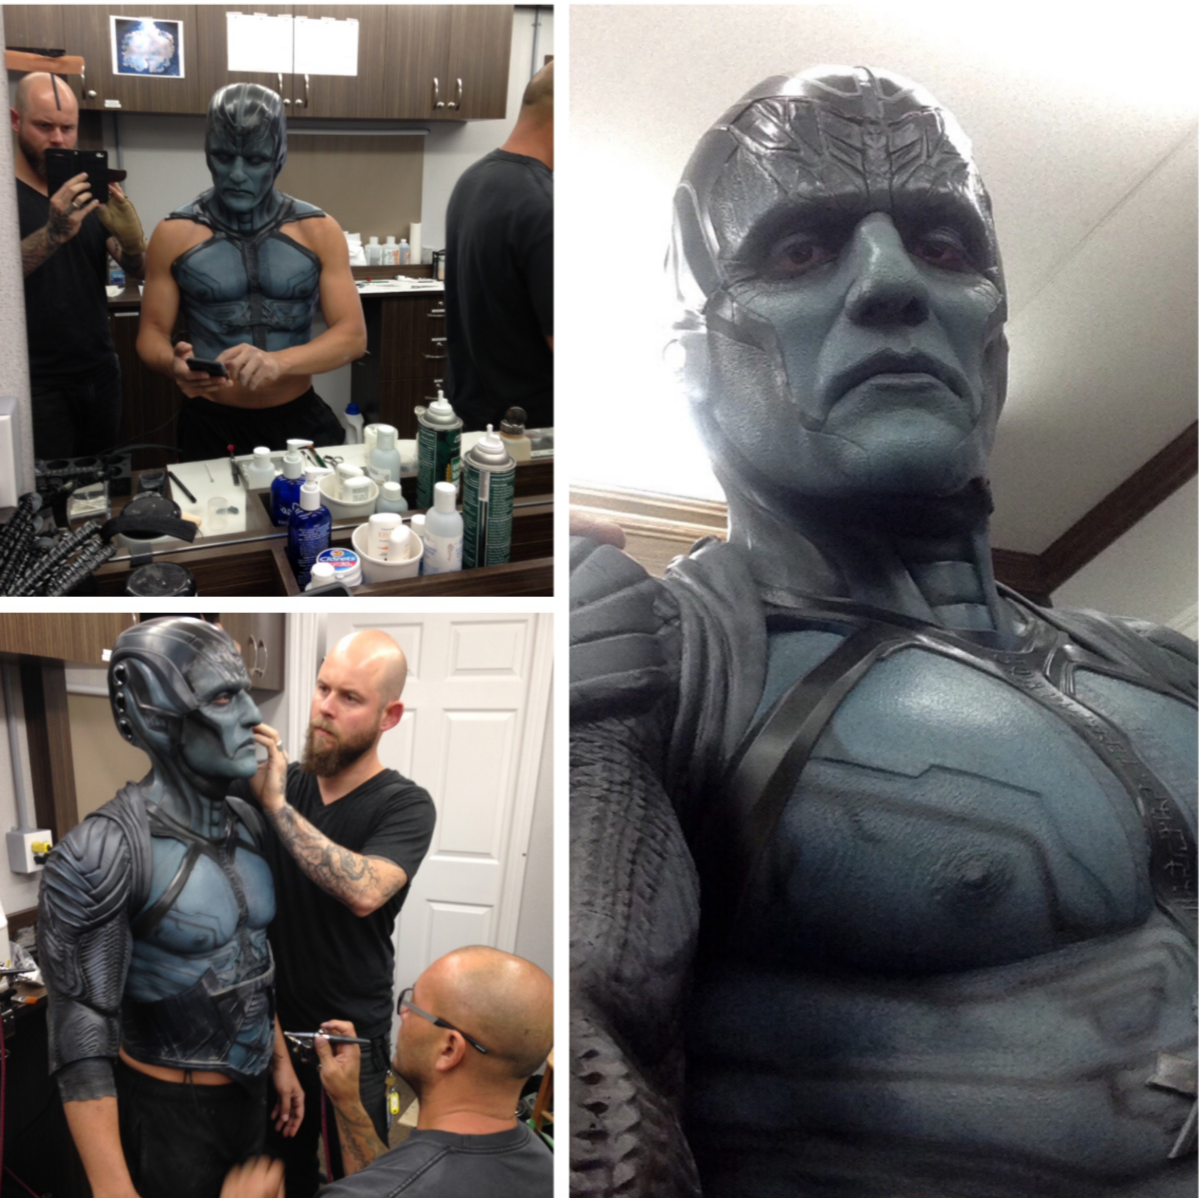 Behind the scenes in MTL representing Legacy Effects.  Alexei  Dmitriew @hookuptattoos and I applied Oscar's makeup for Apocalypse.  This is for the end sequence where his armor gets blasted away. The  Apocalypse makeup consisted of a urethane head piece, silicone  neck/cowl, silicone forehead, face and lower jaw. It usually took us  around 1 1/2 hours to do the face makeup when he wore his armor. With  the added silicone chest and back painting and tattoos (provided by Hook  Up Tattoos) we added an extra 30 minutes to the application time.